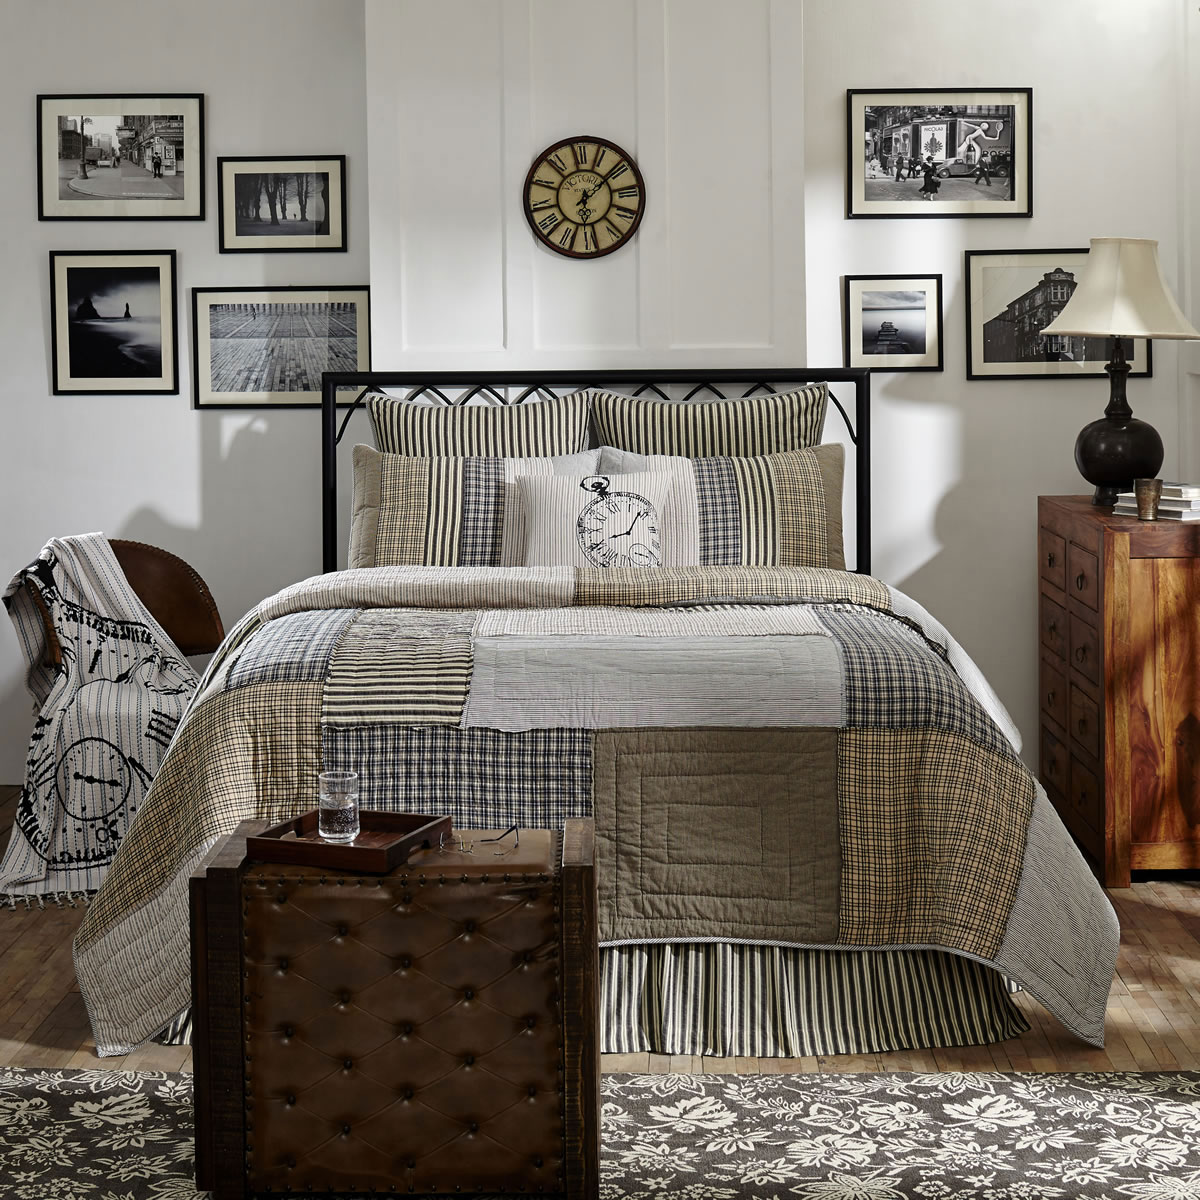 ashmont by vhc brands  beddingsuperstorecom - zoom in